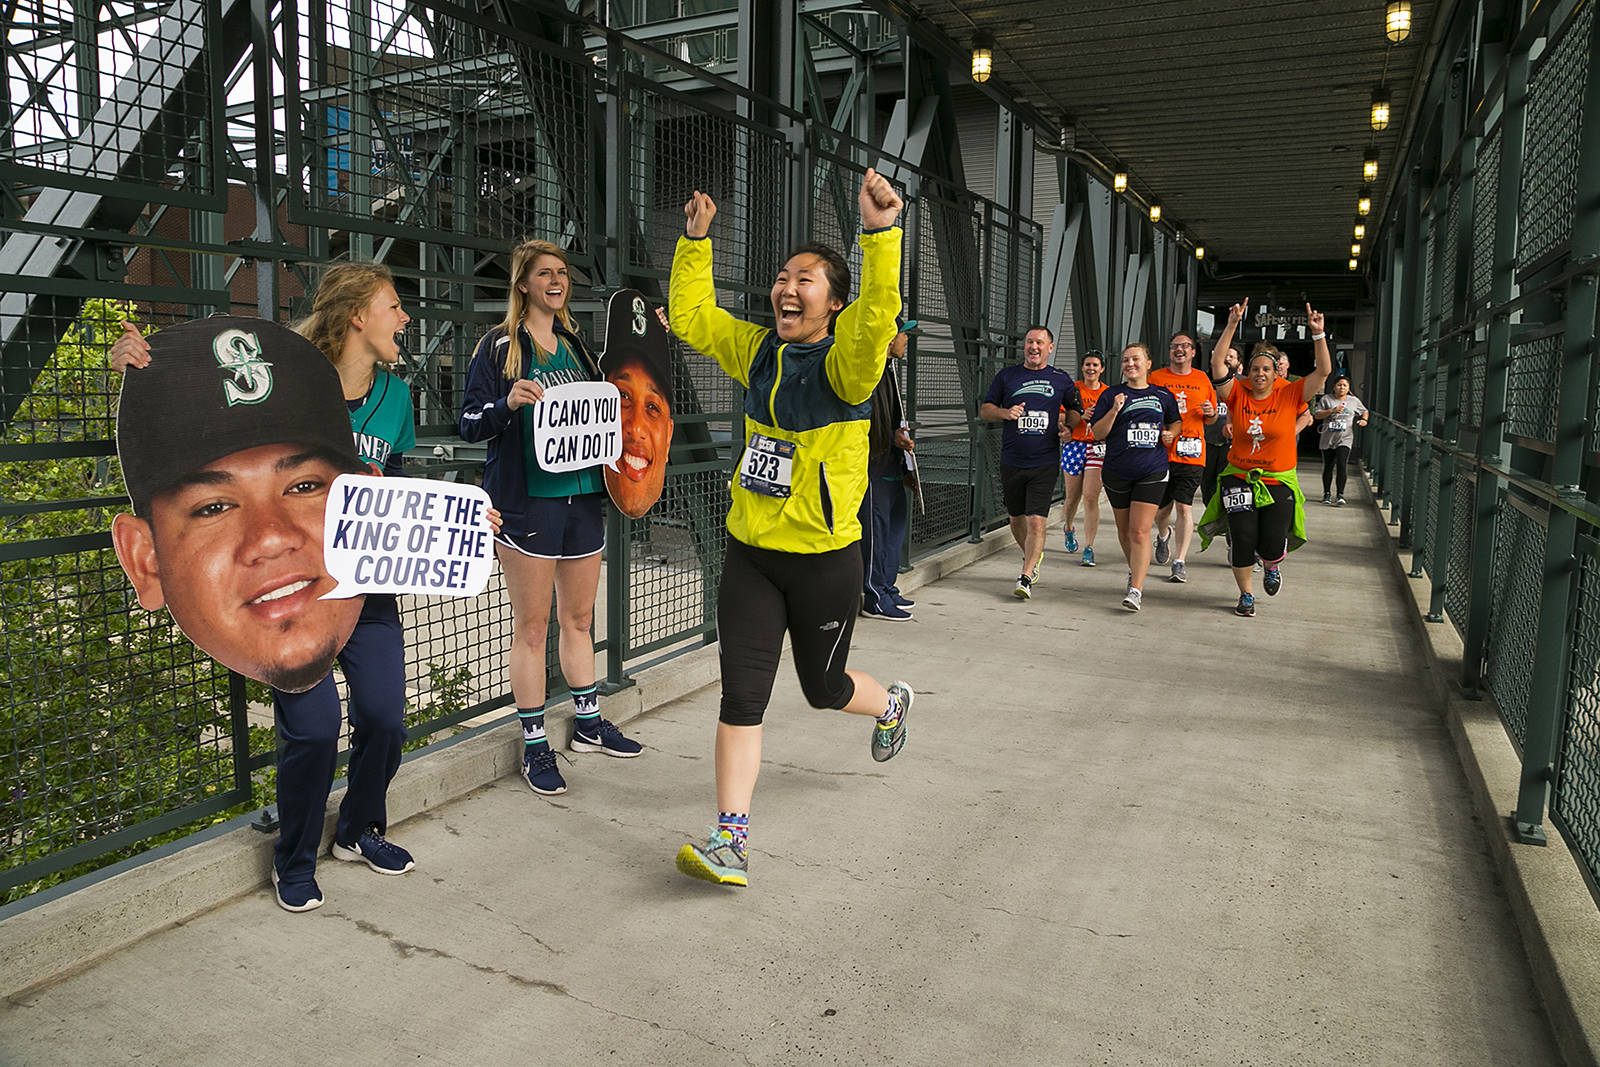 The Refuse to Abuse 5k, at Safeco Field July 21, supports the Washington State Coalition Against Domestic Violence. Ben VanHouten photo